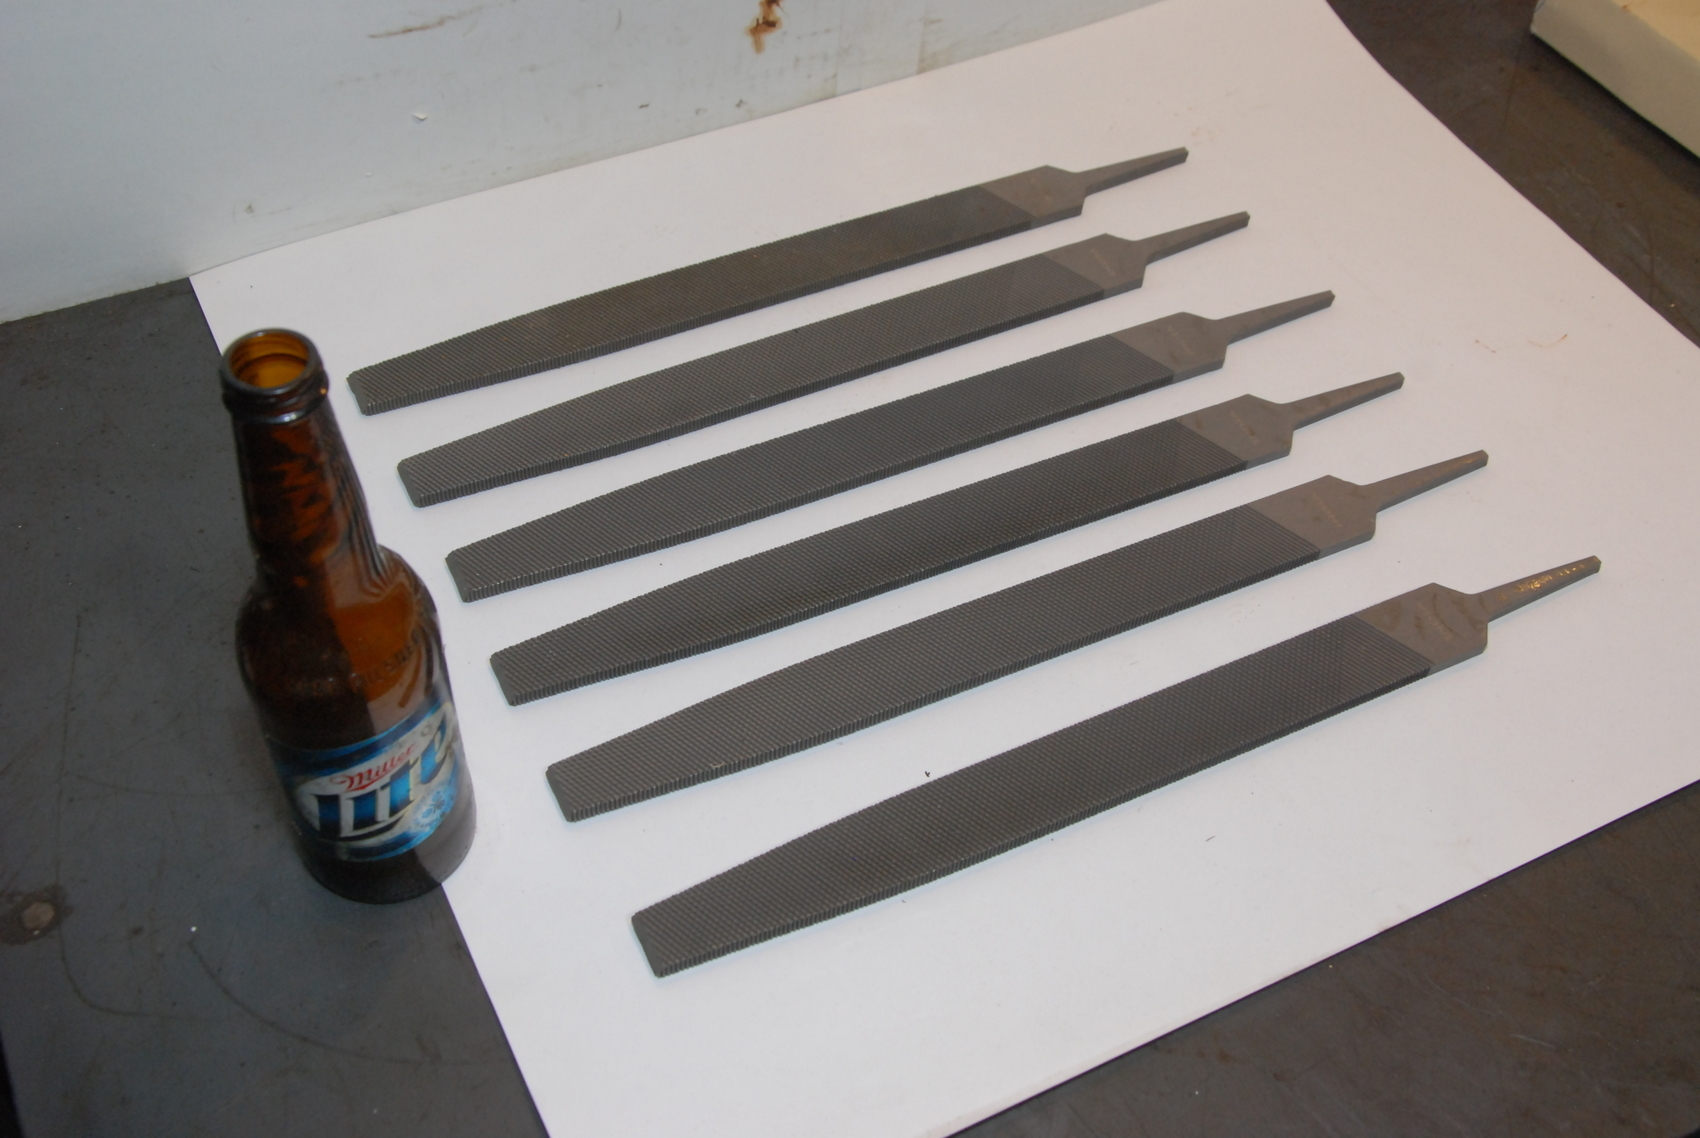 Lot of 6,14in Flat Coarse Foundry File,350mm